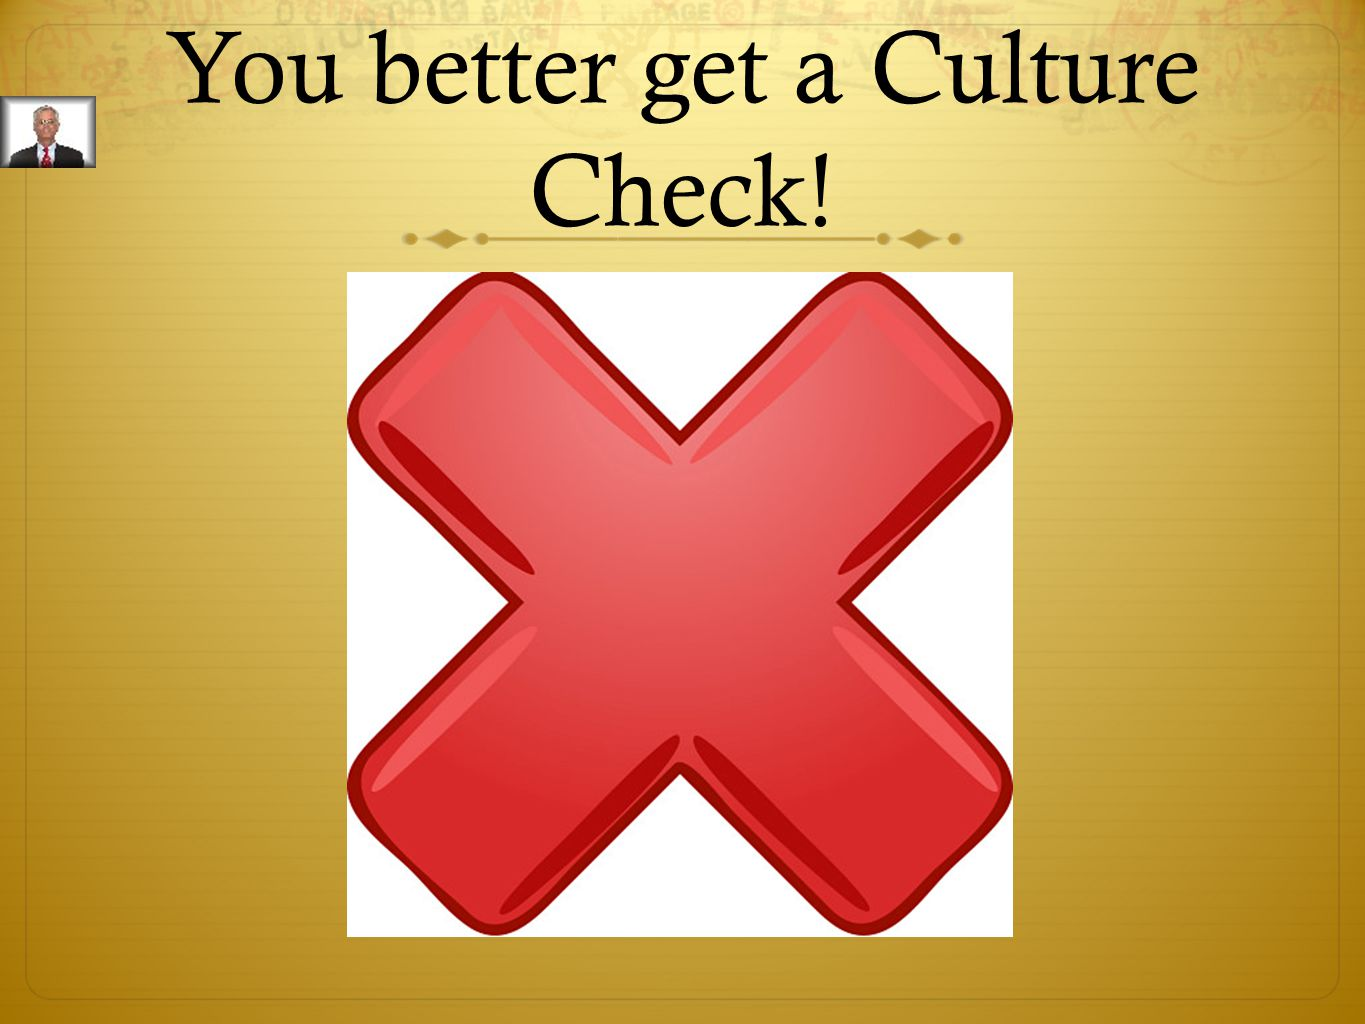 You better get a Culture Check!